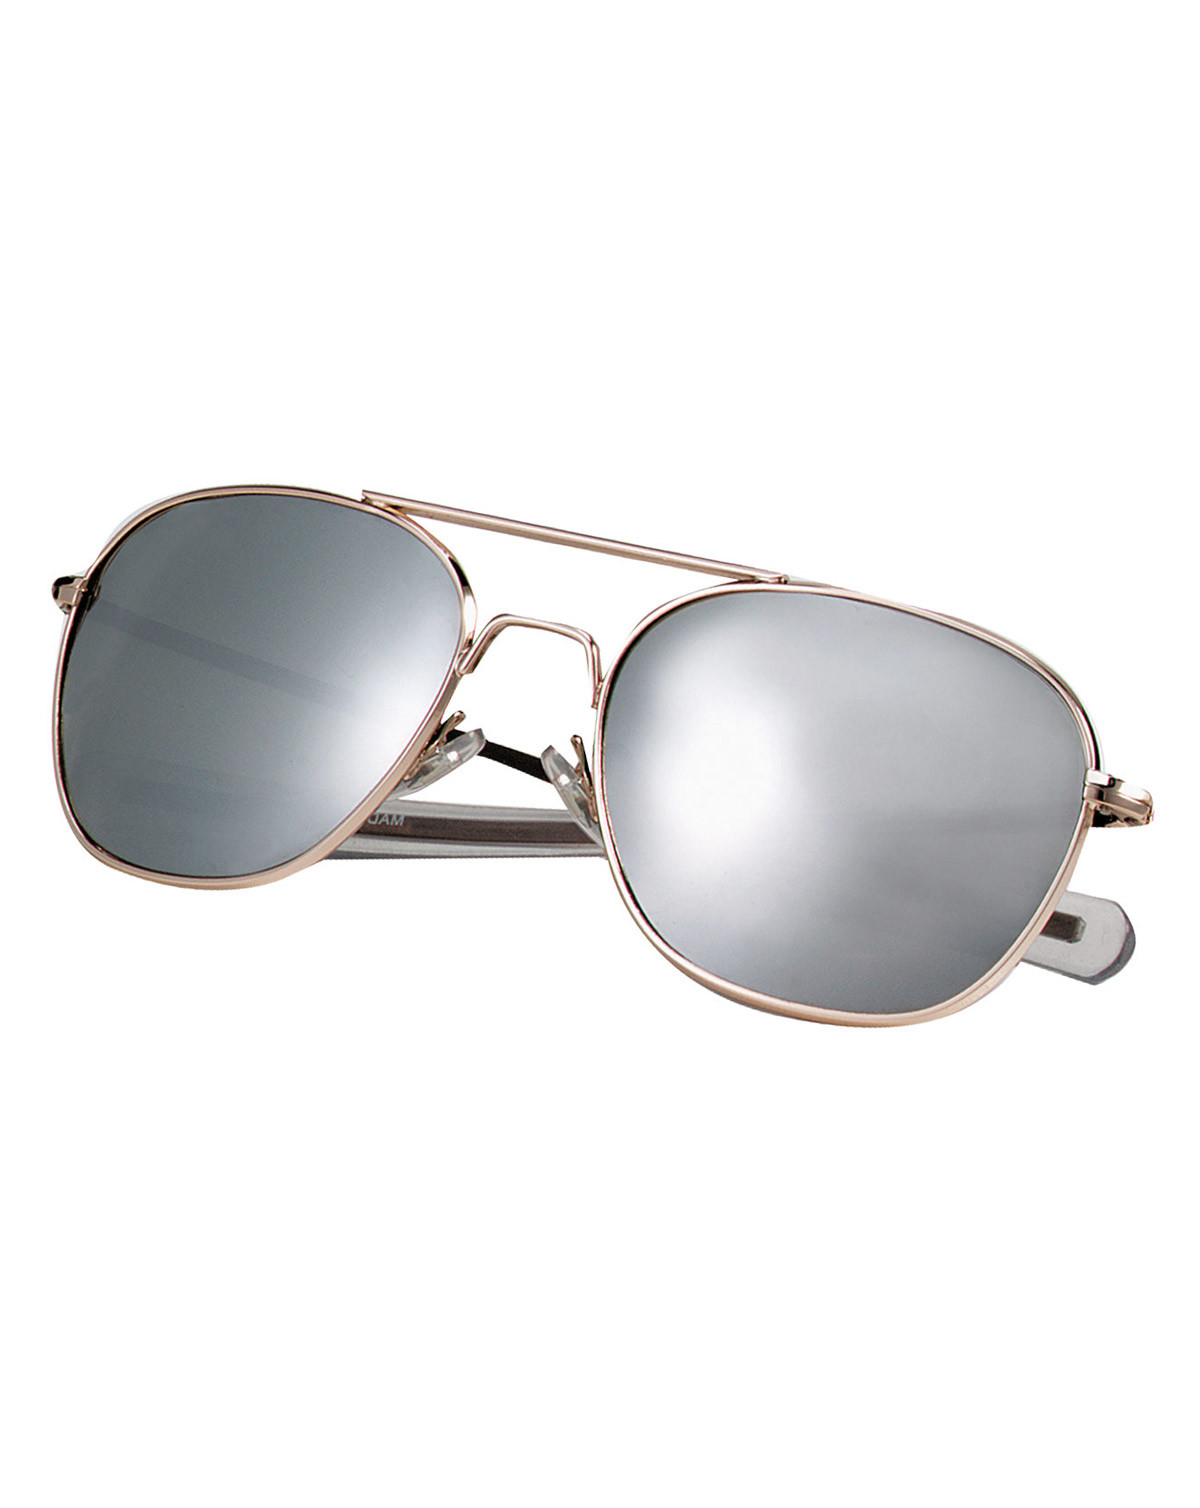 Image of   Rothco Aviator Solbriller (Guld m. Spejl, One Size)